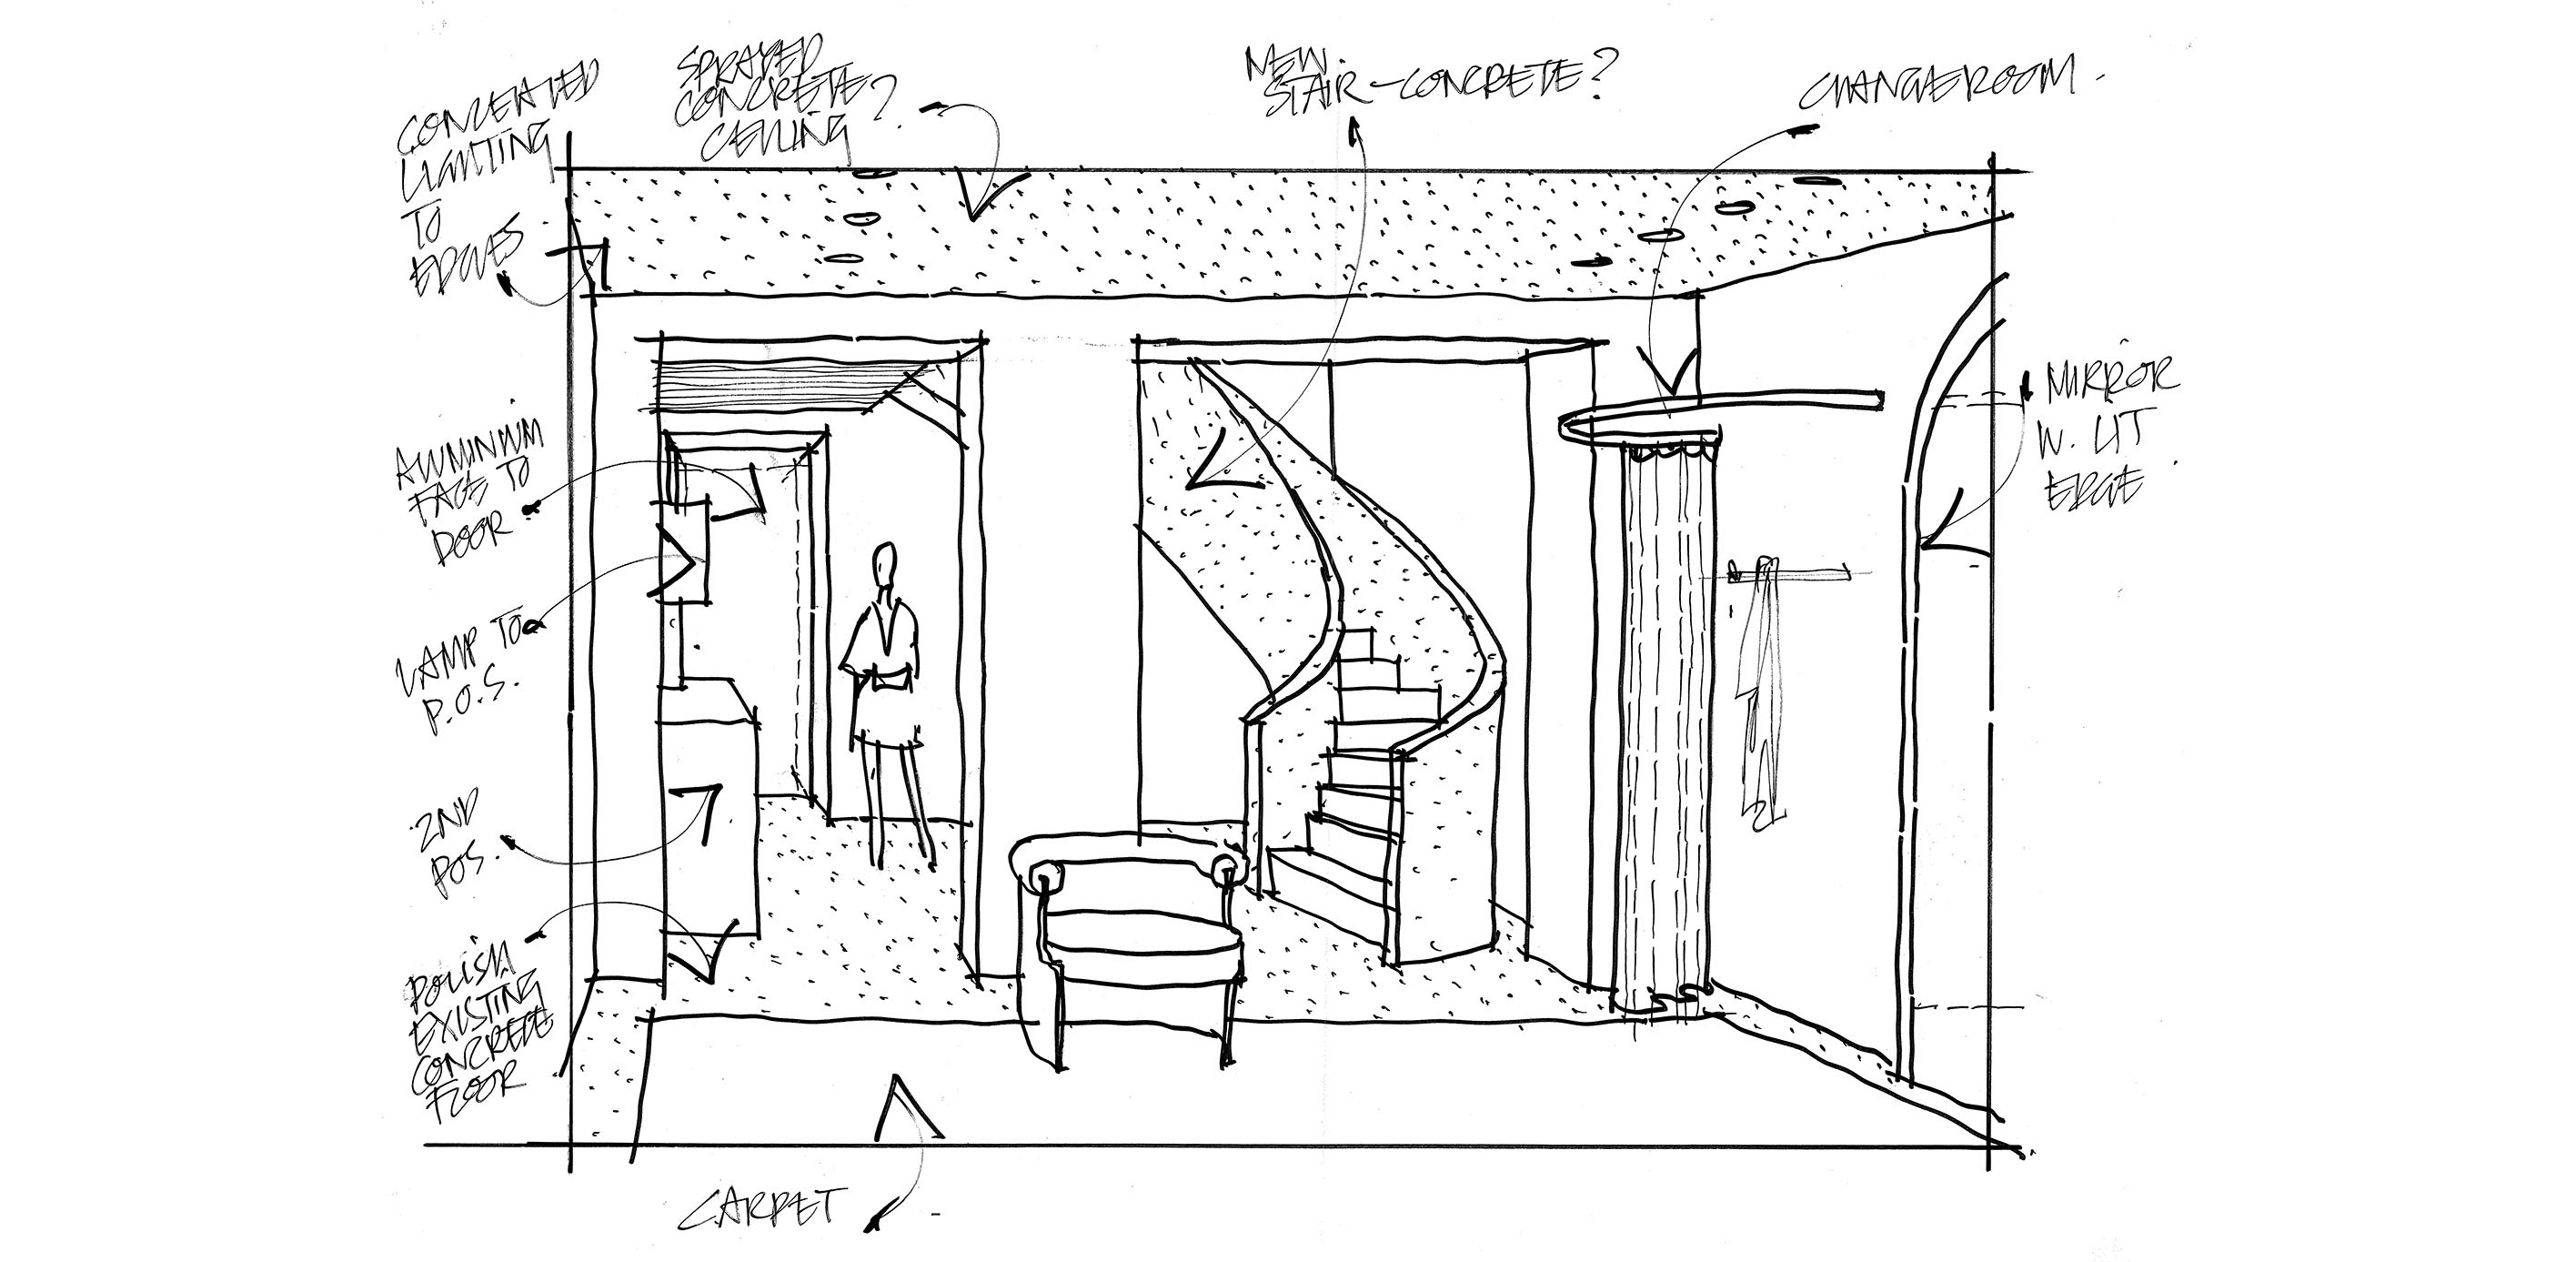 Don McQualter's original sketches for our Mayfair store